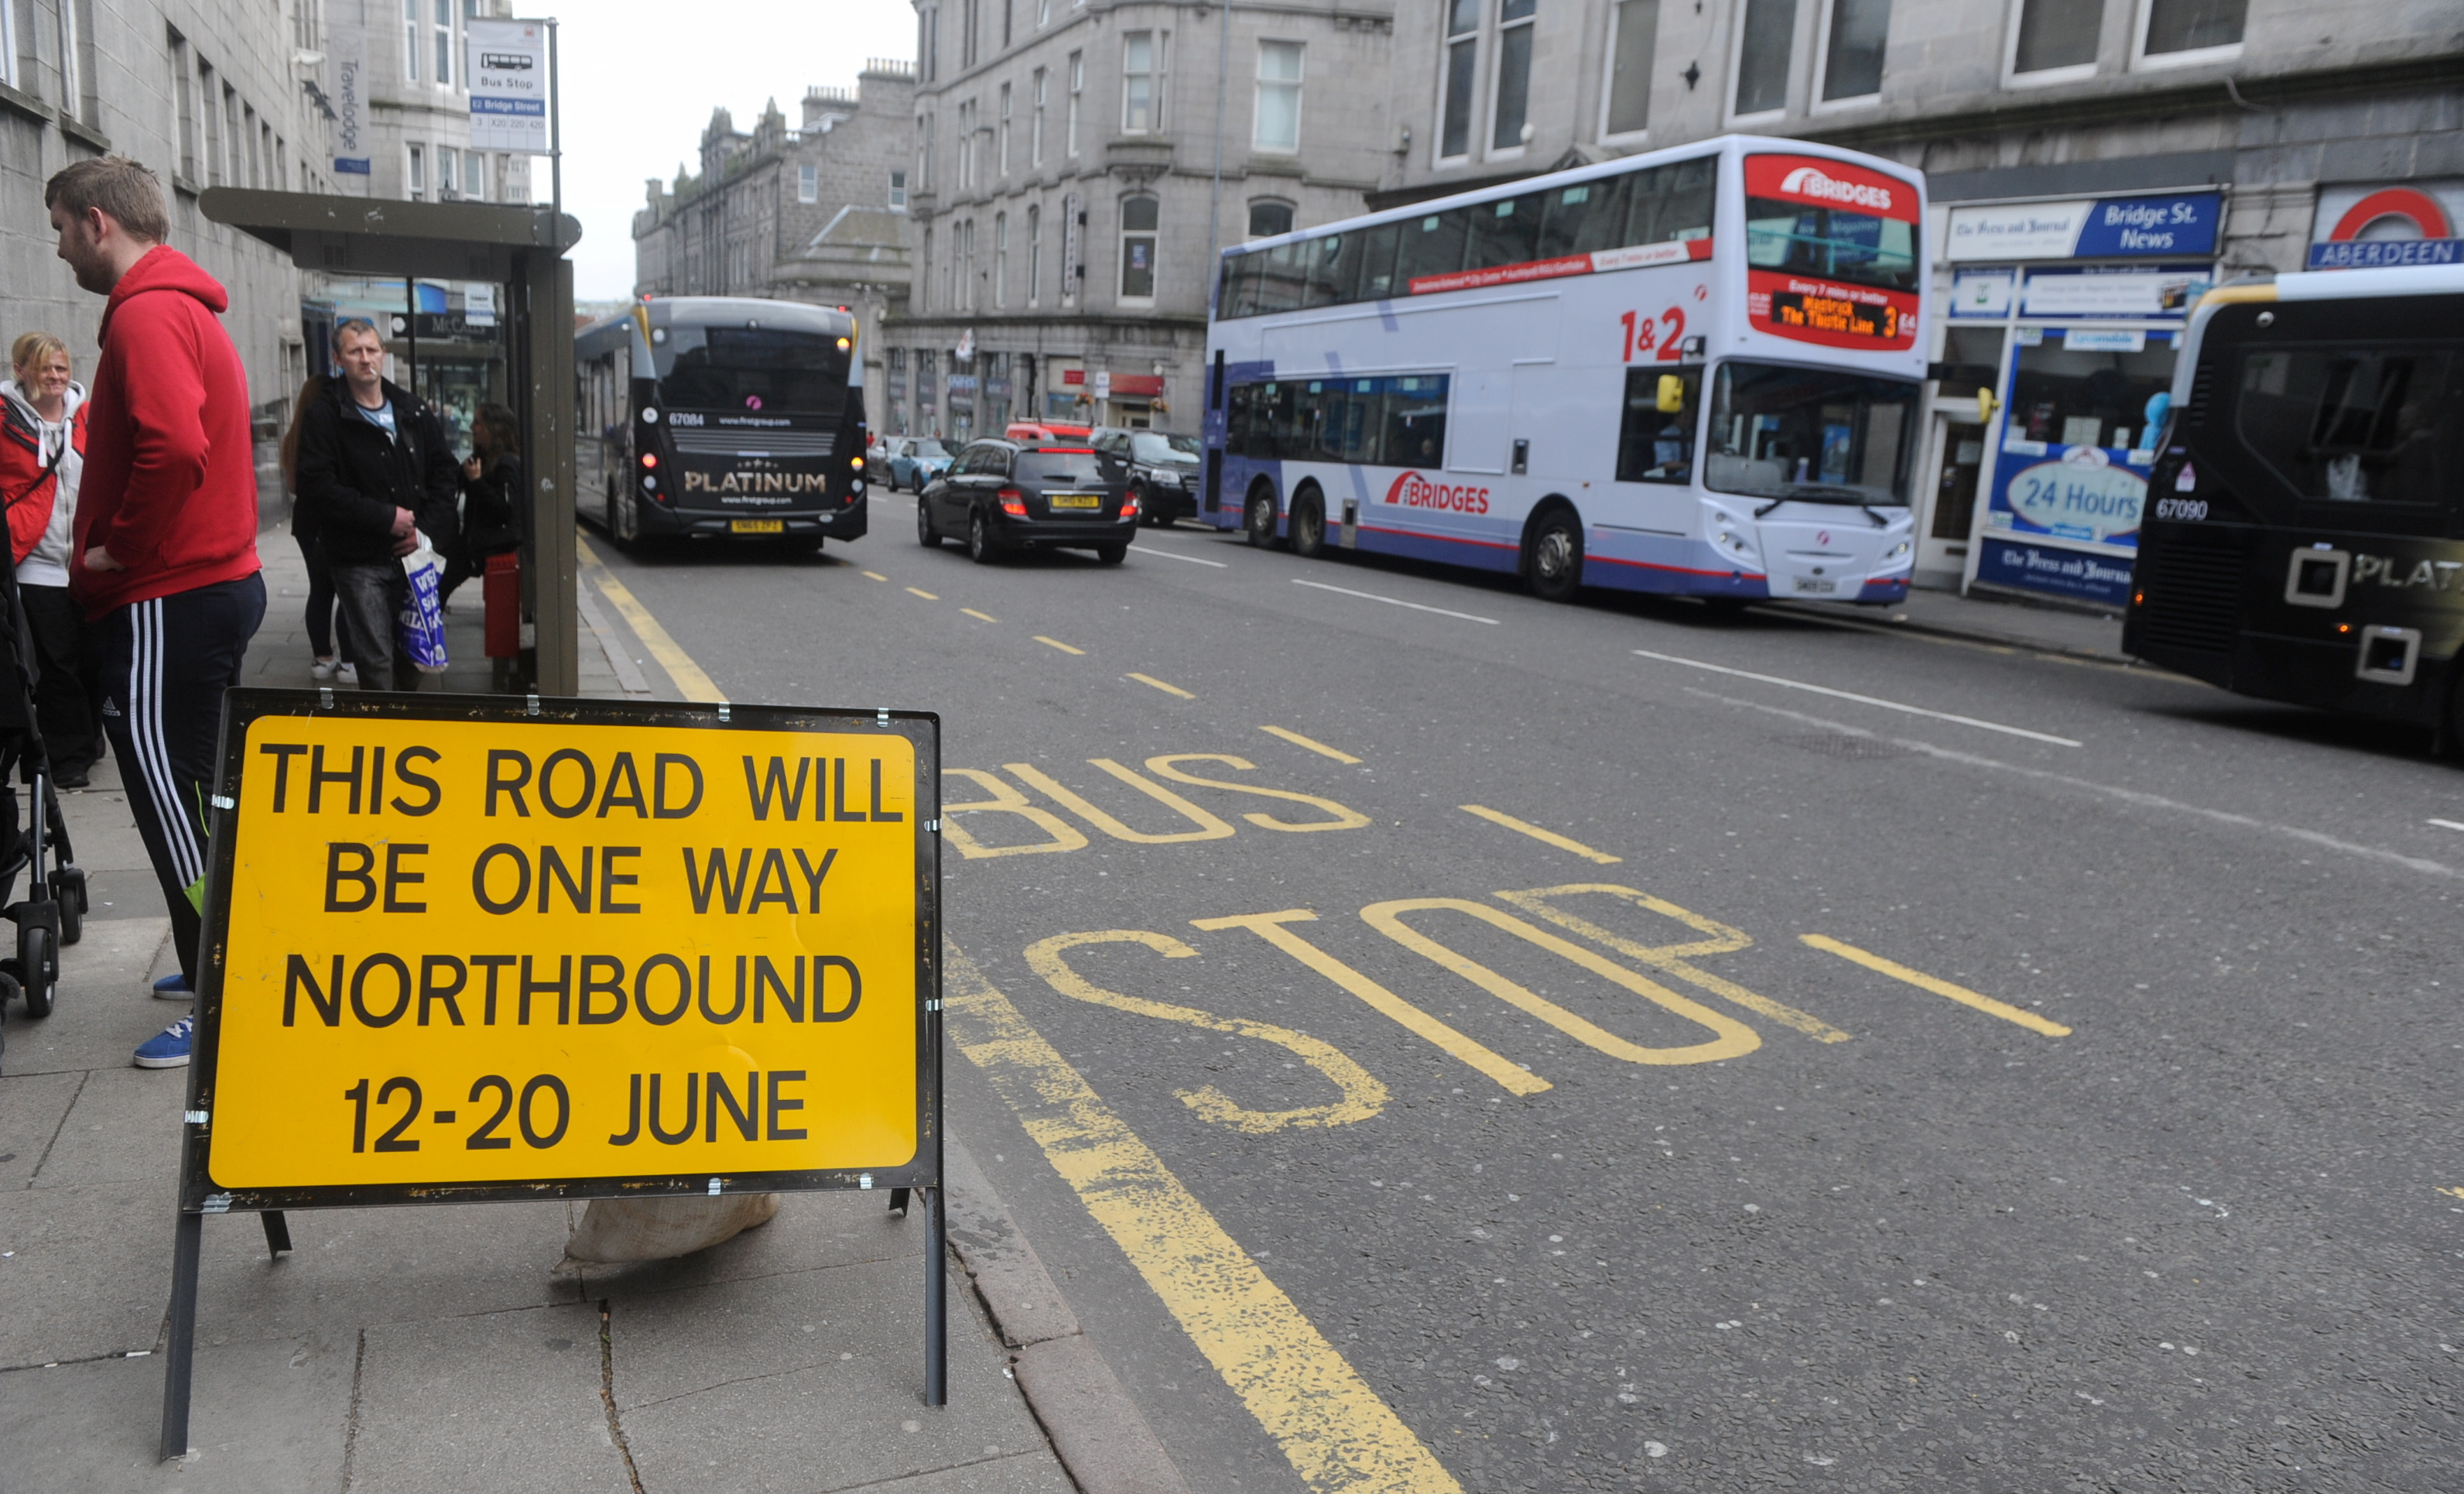 A sign in Bridge Street warning of the imminent closure.